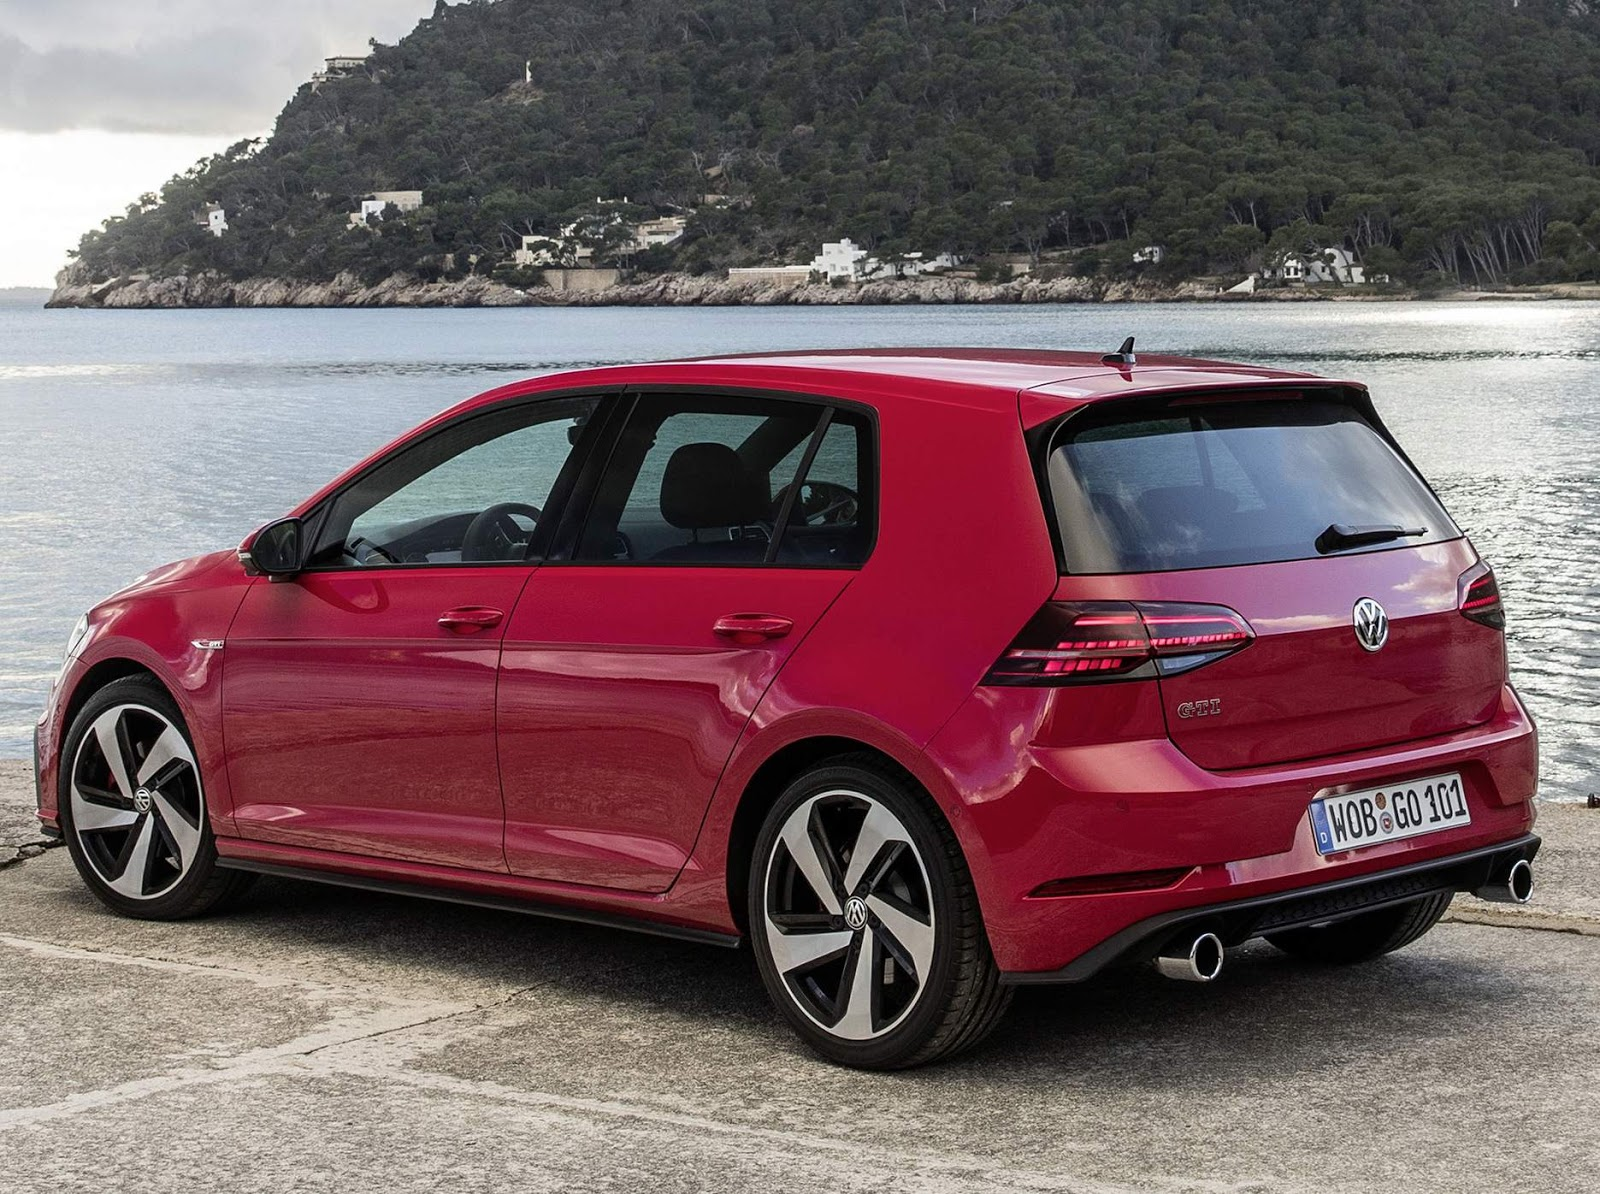 vw golf gti performance 2018 pre o e detalhes europa car blog br. Black Bedroom Furniture Sets. Home Design Ideas